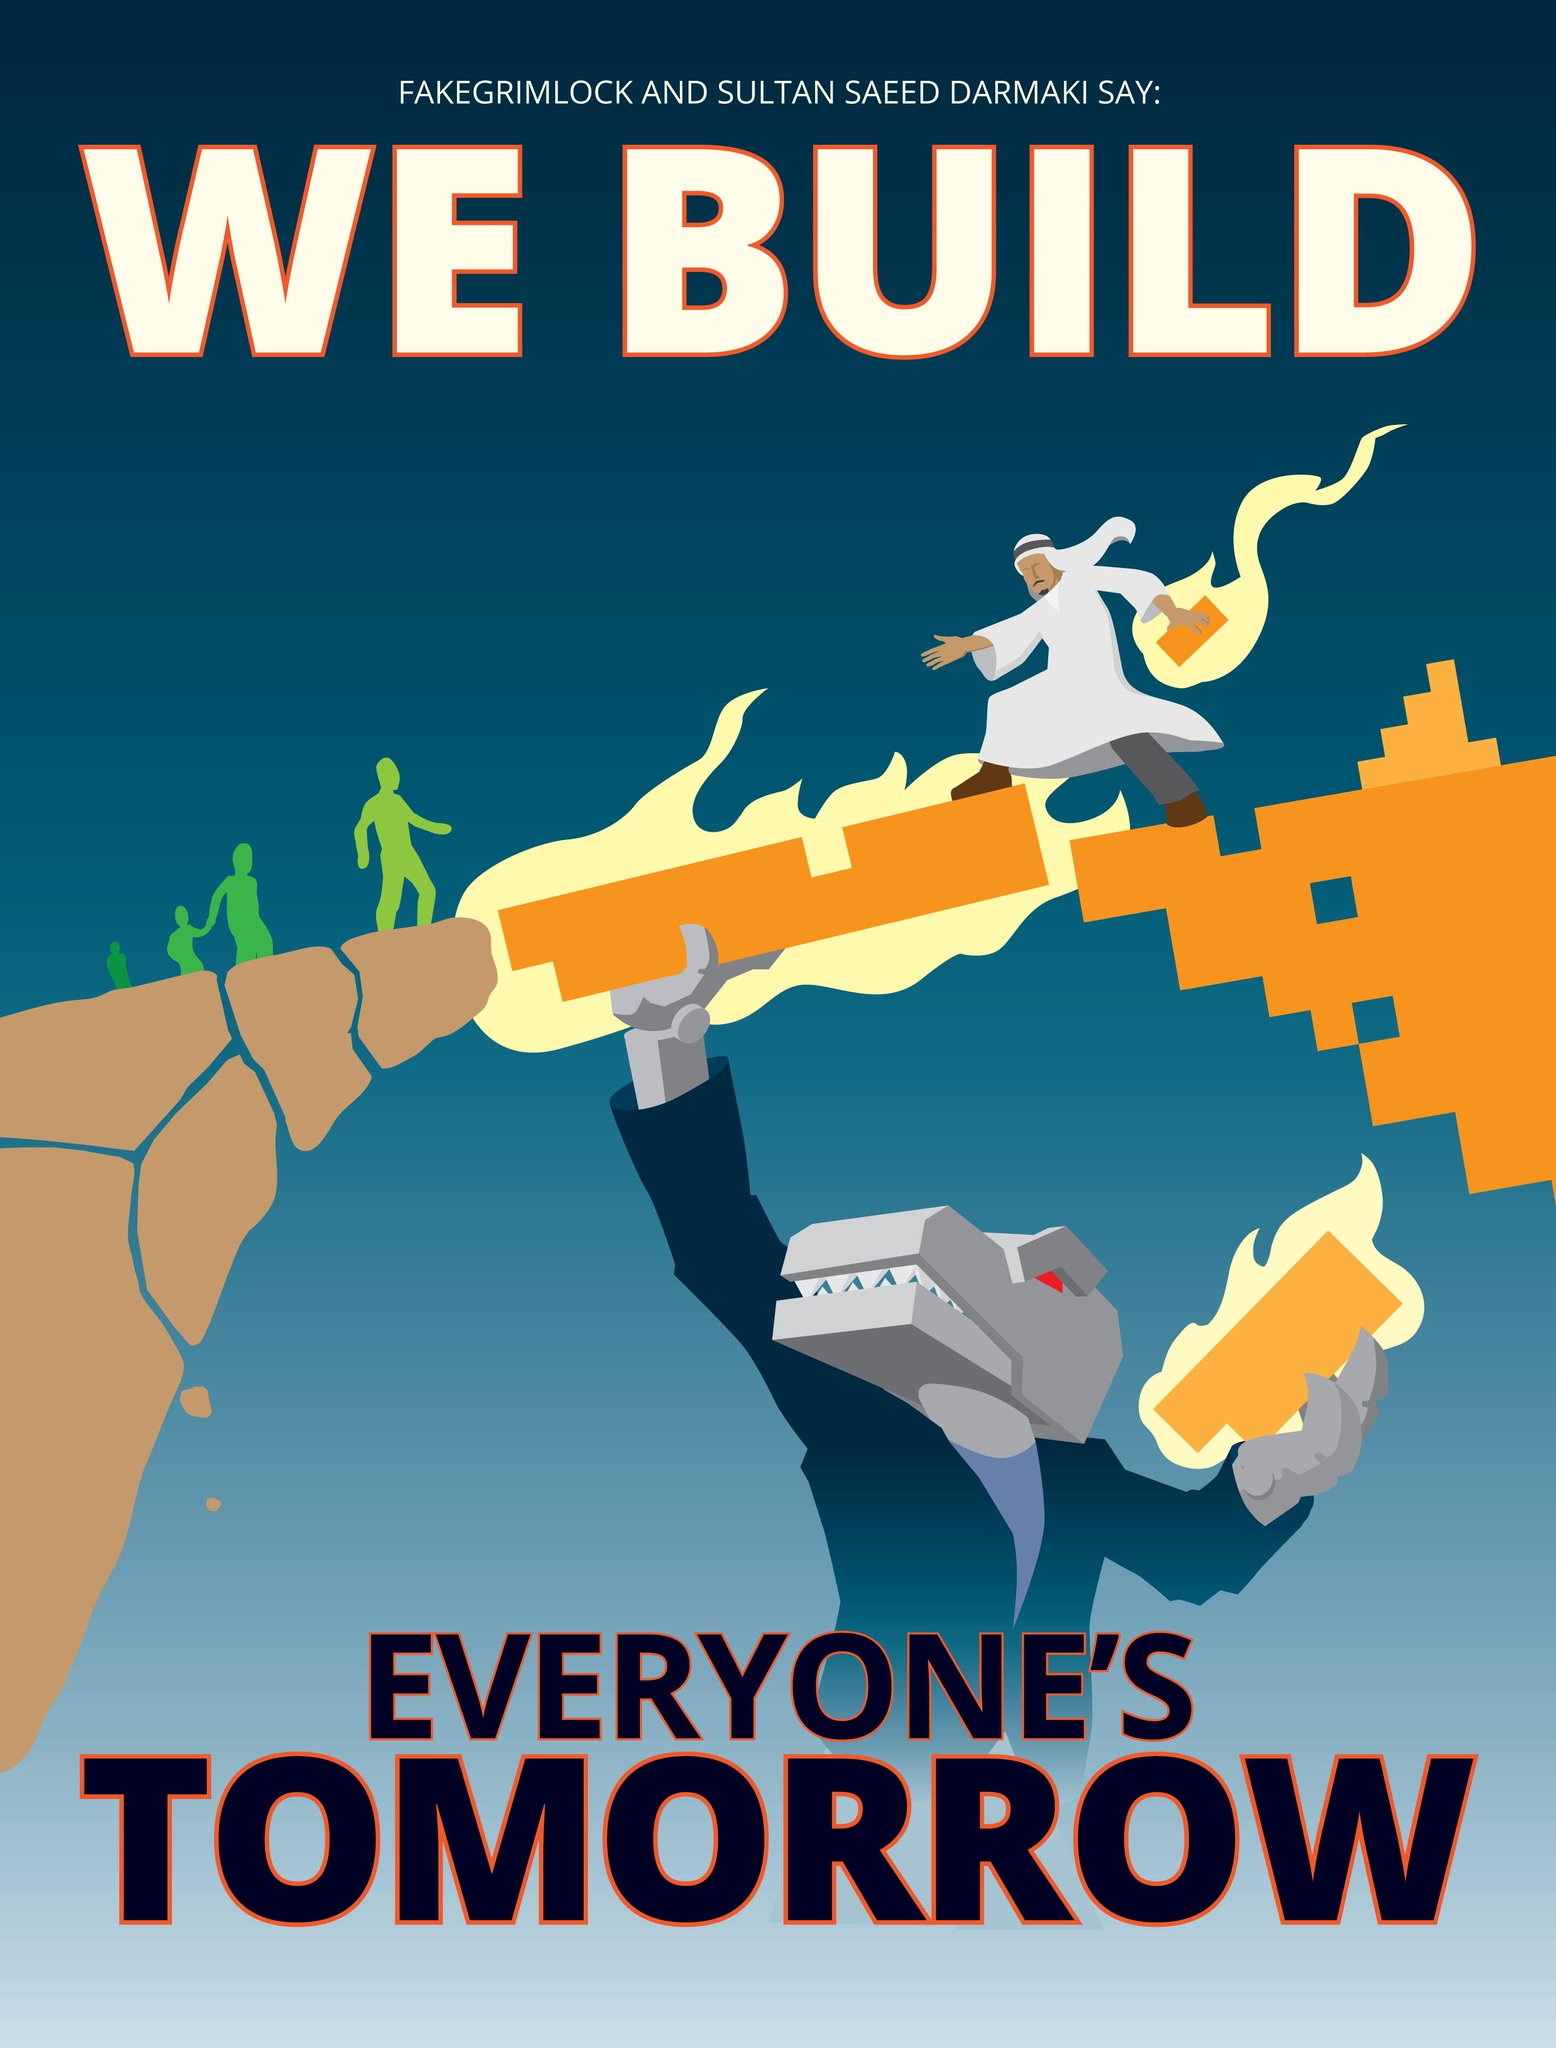 Twitter / FAKEGRIMLOCK: STARTUPS: WE BUILD EVERYONE'S ...